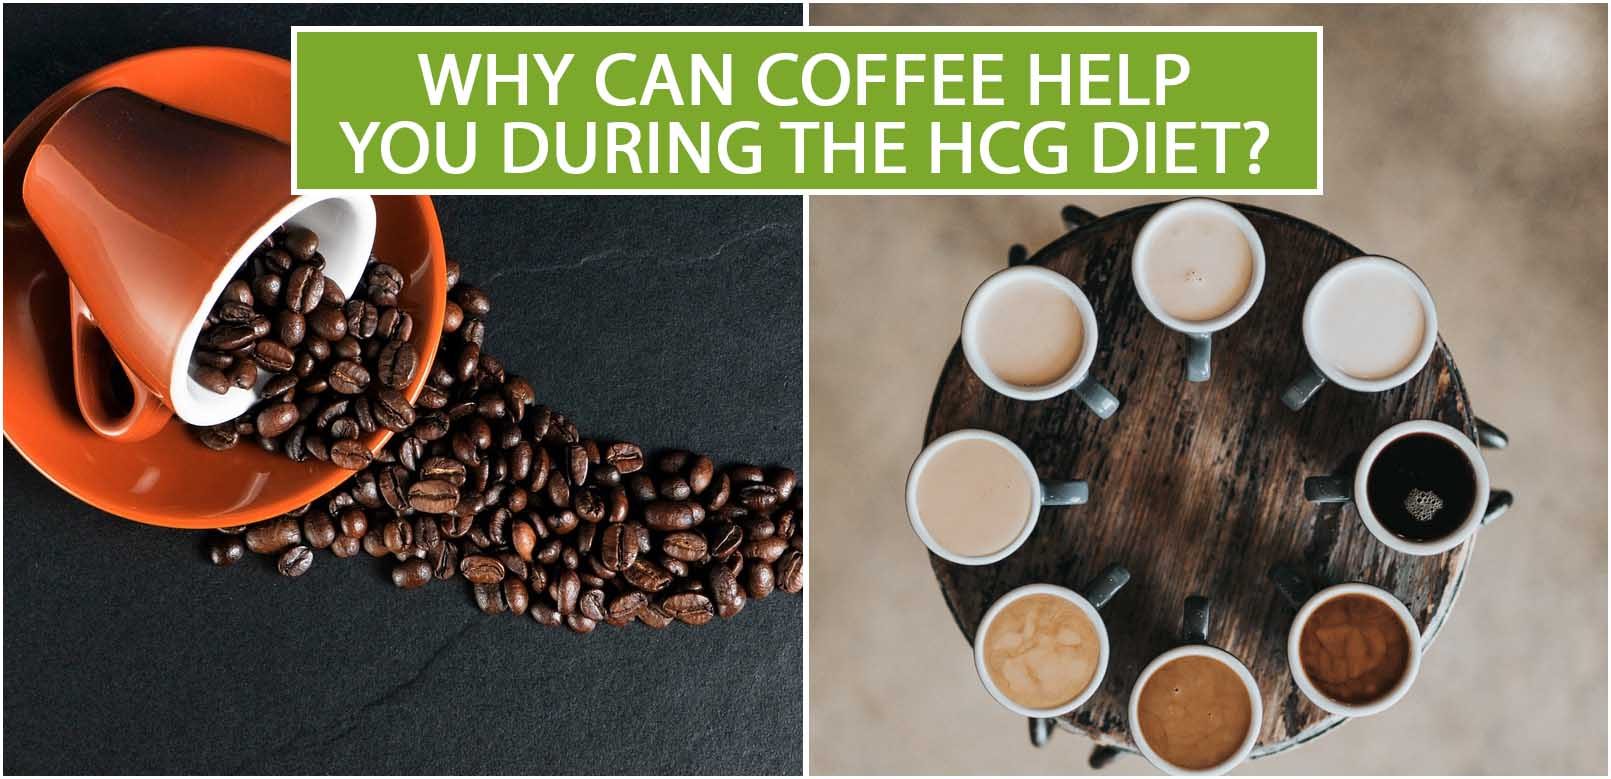 WHY CAN COFFEE HELP YOU DURING THE HCG DIET